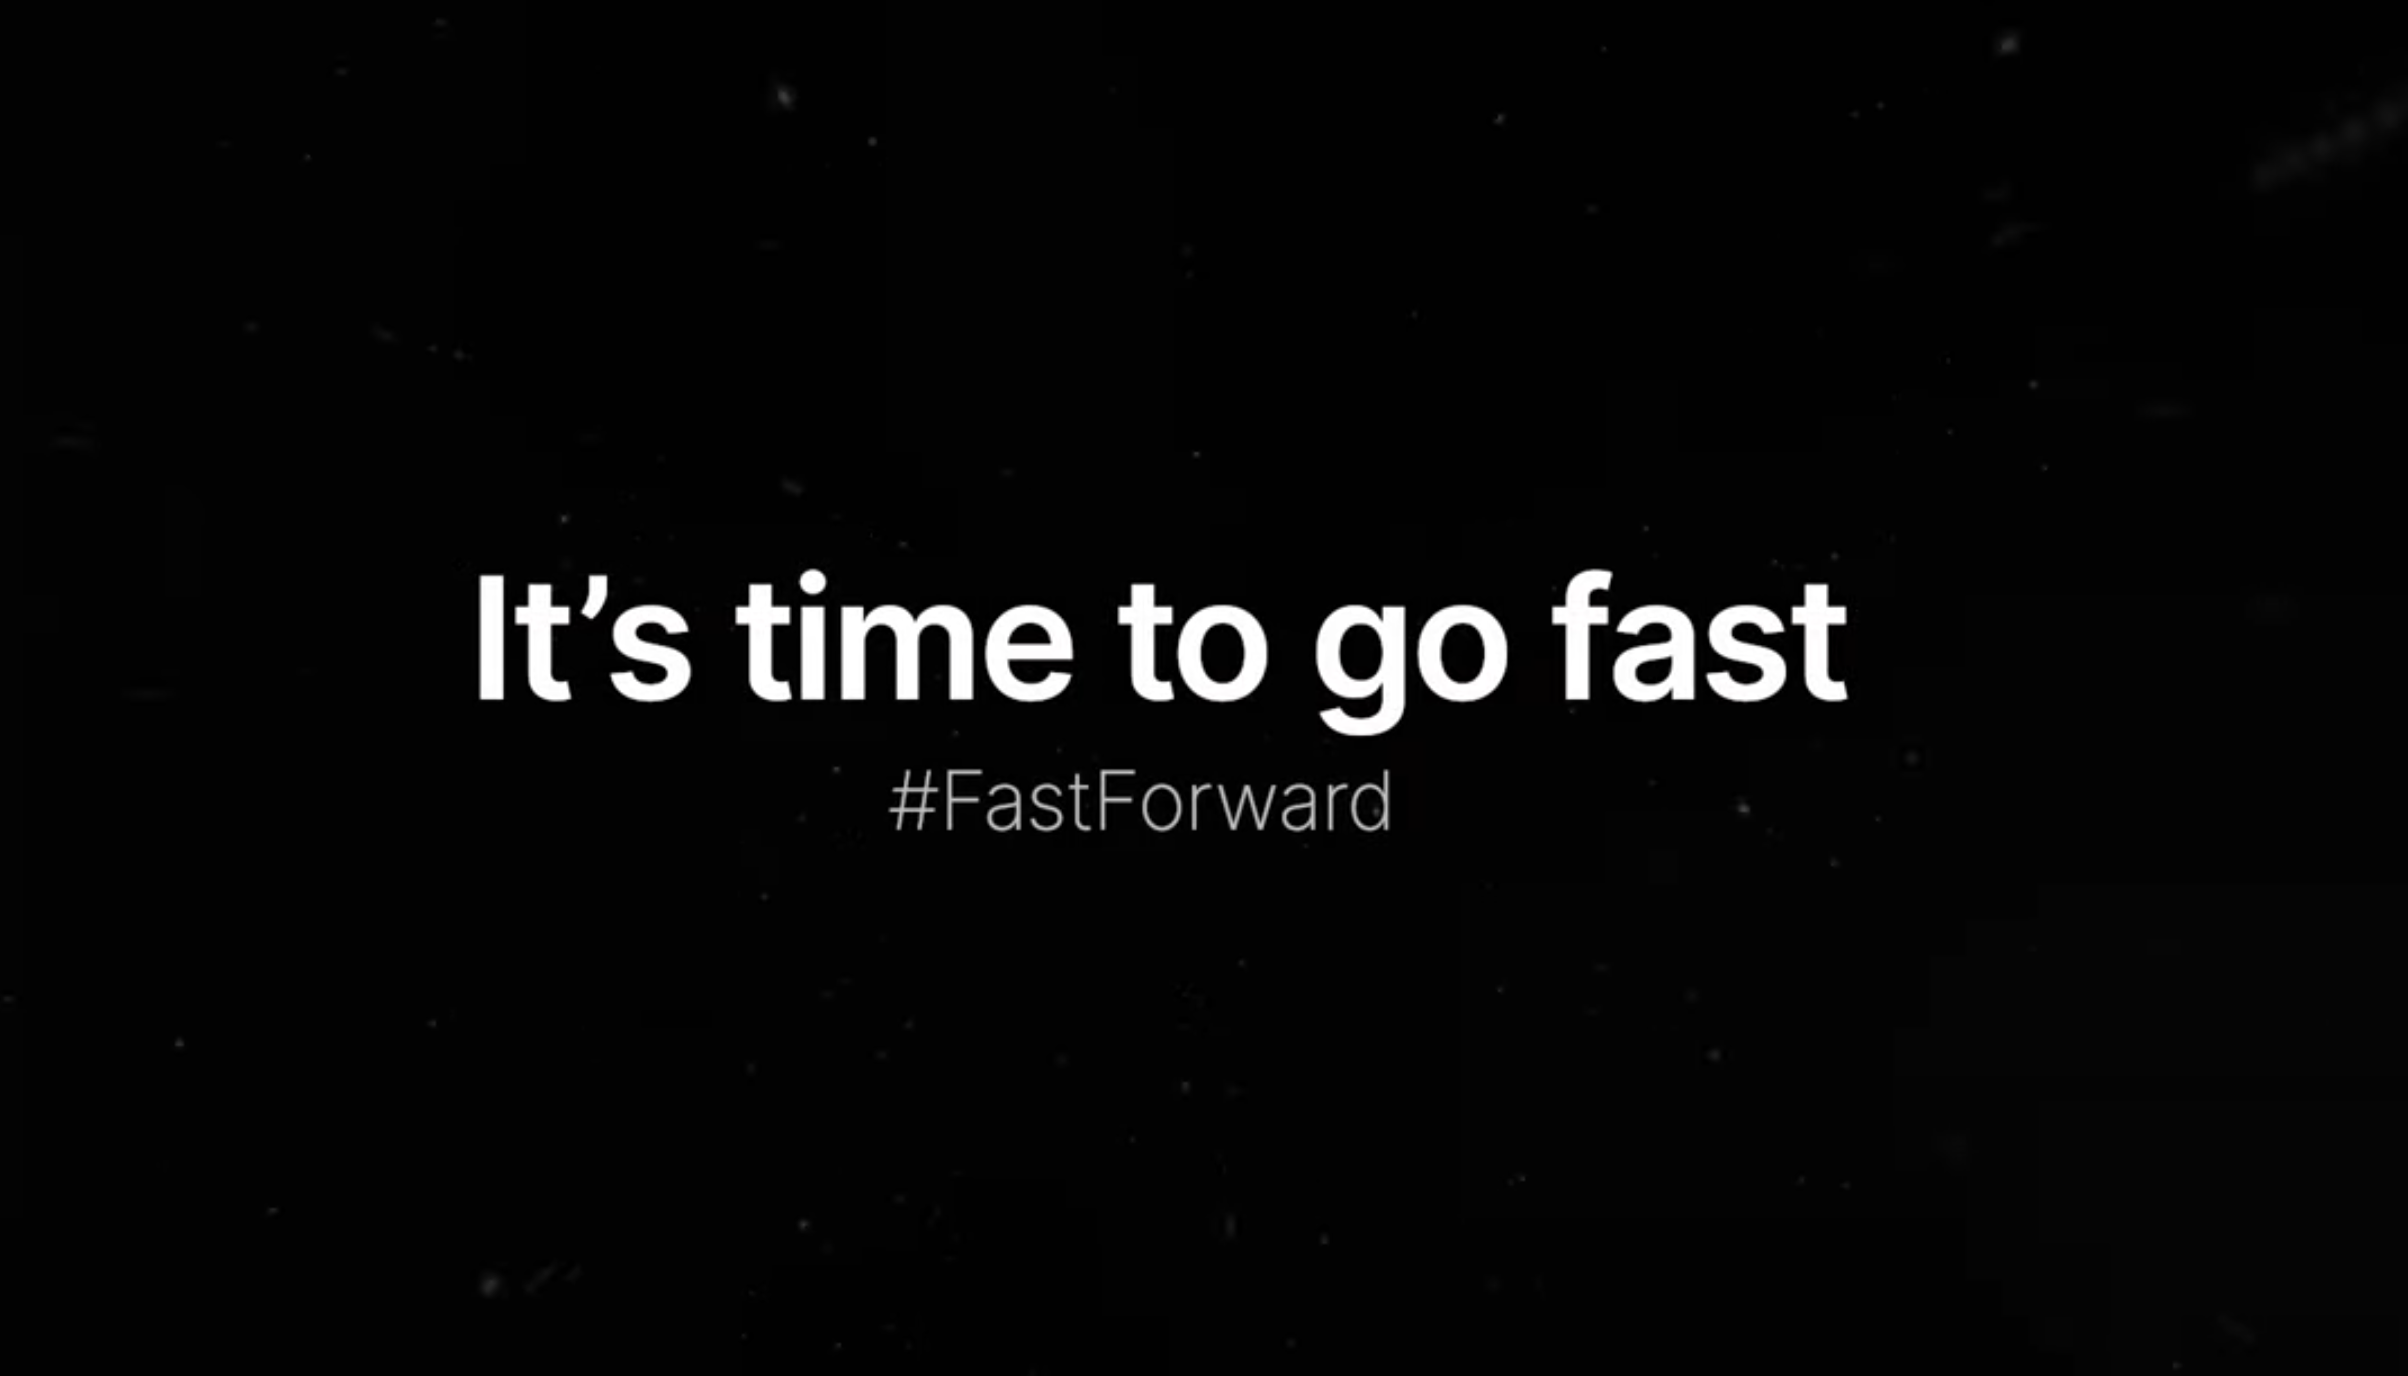 #FastForward - Fast Launch Event